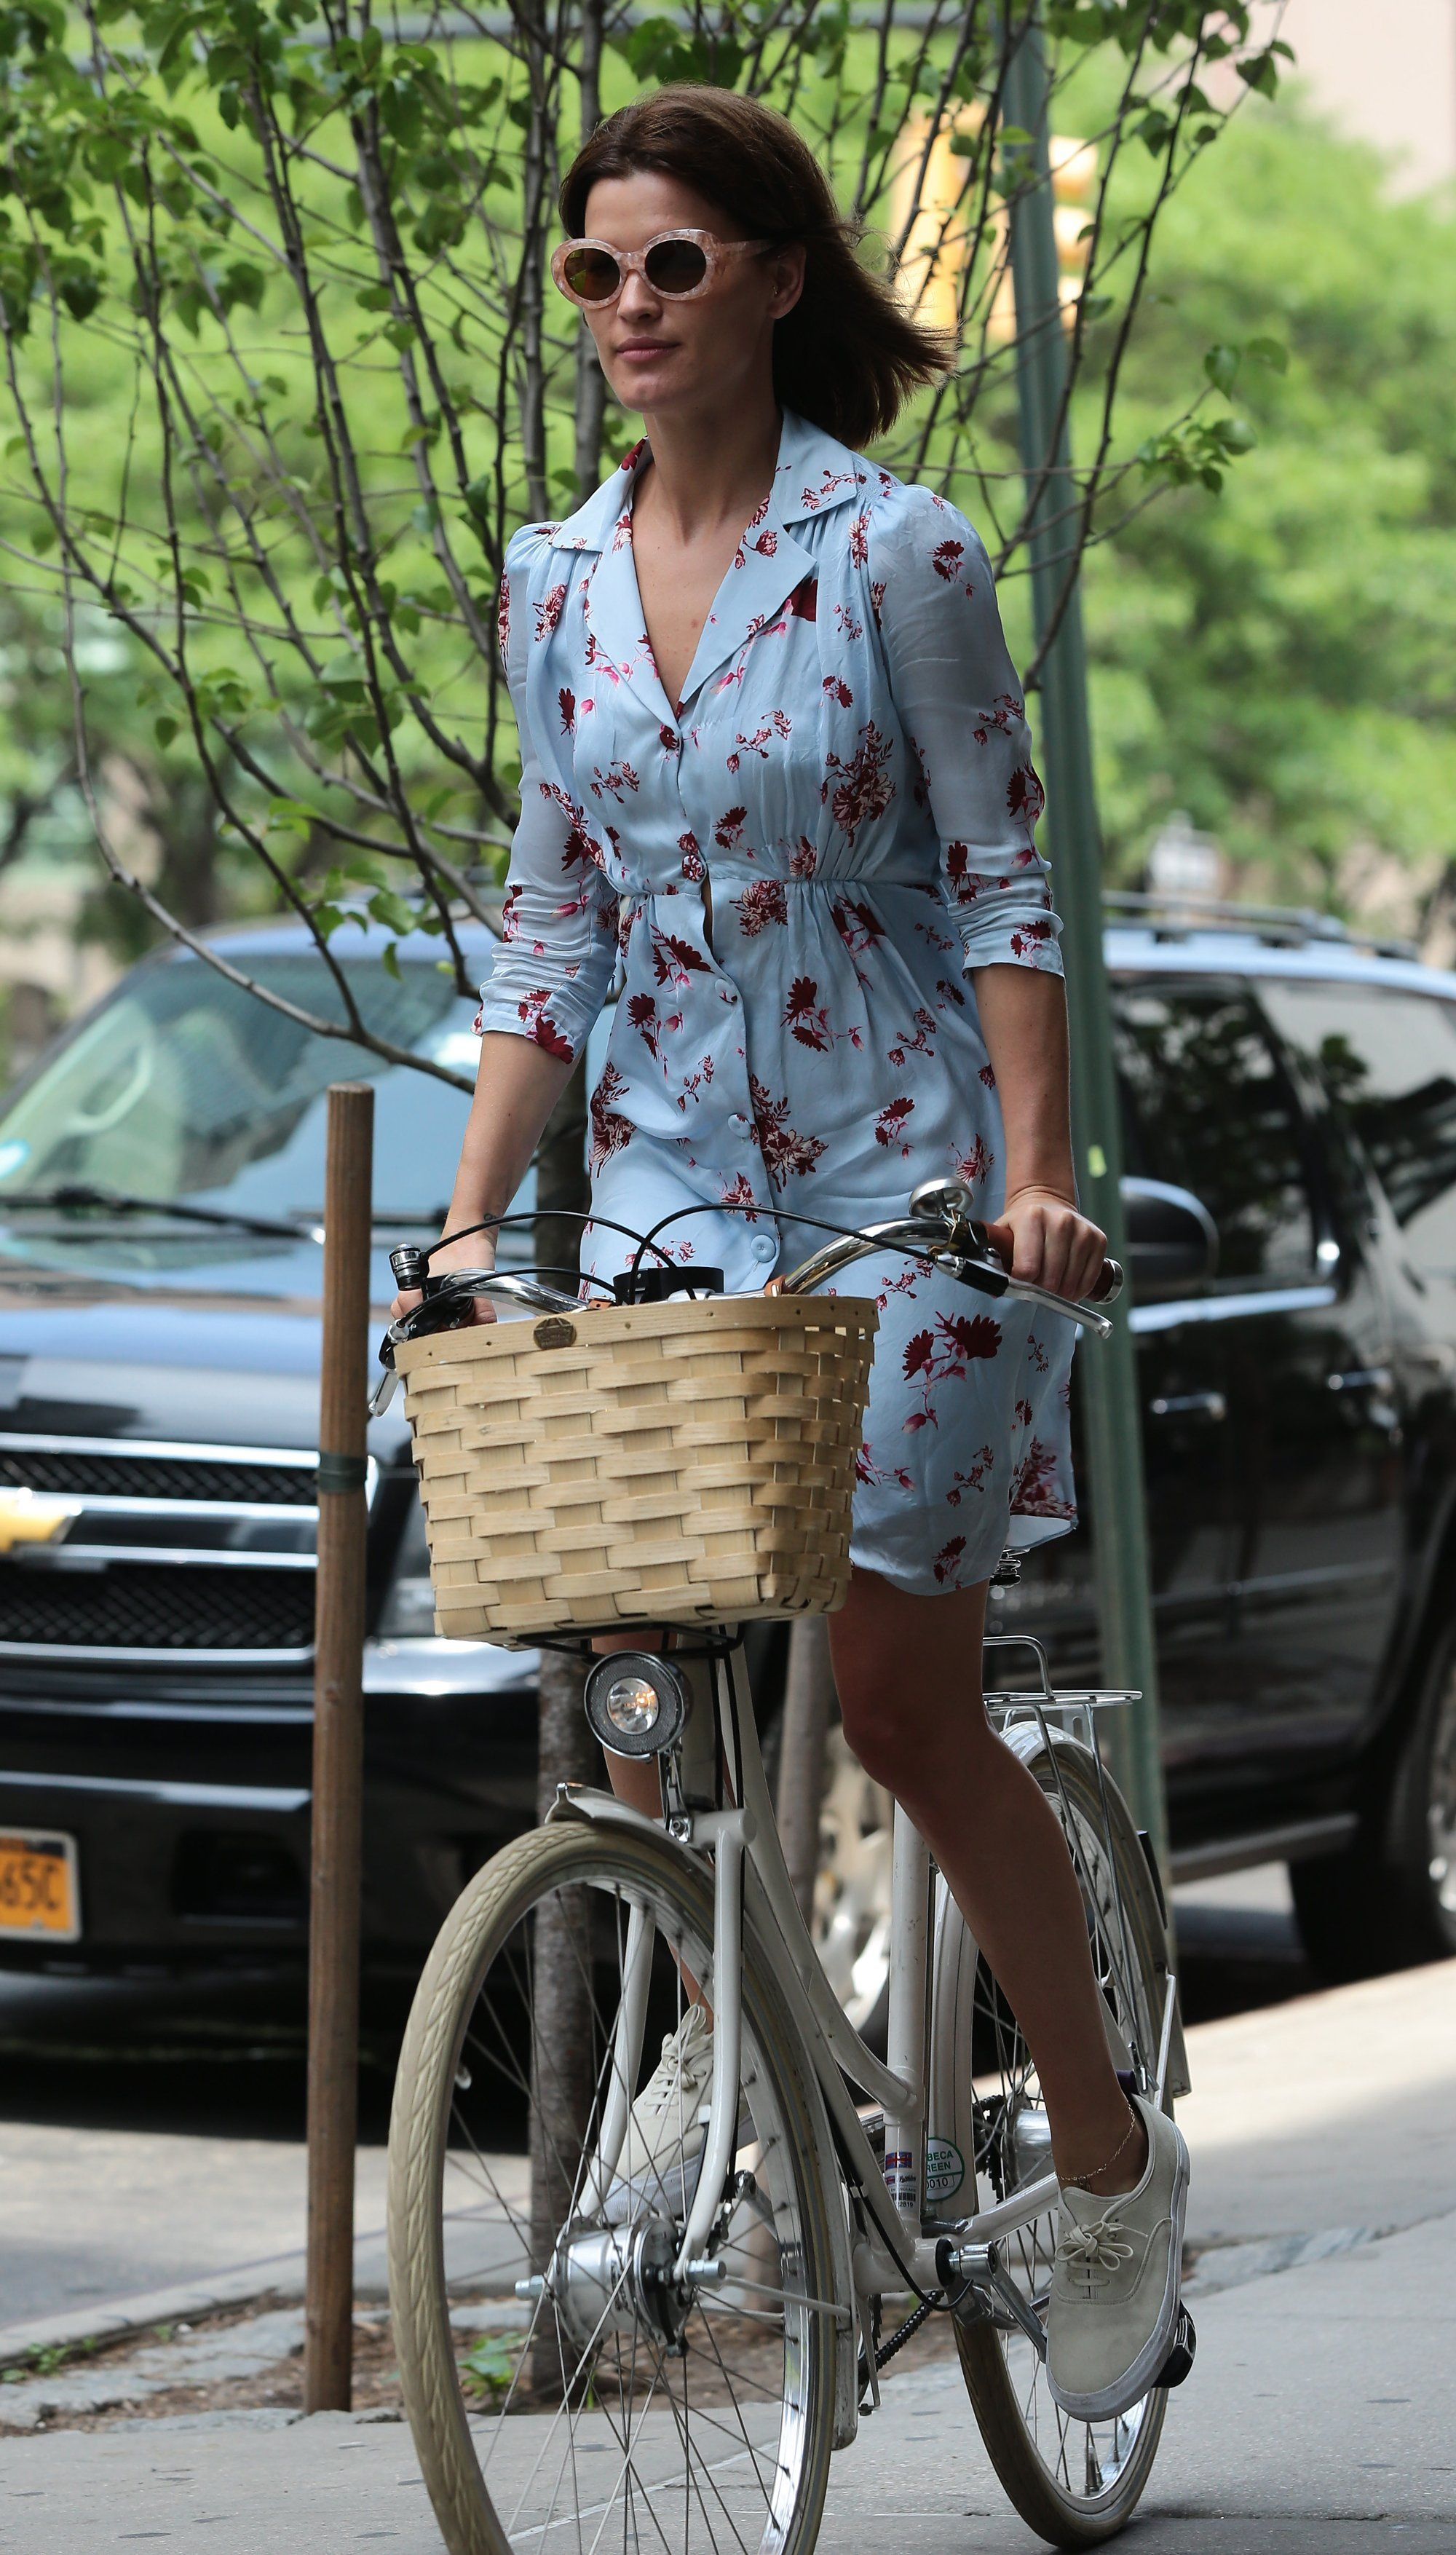 Ask CF: What Are Some Bike-Friendly Fashions for Different Types